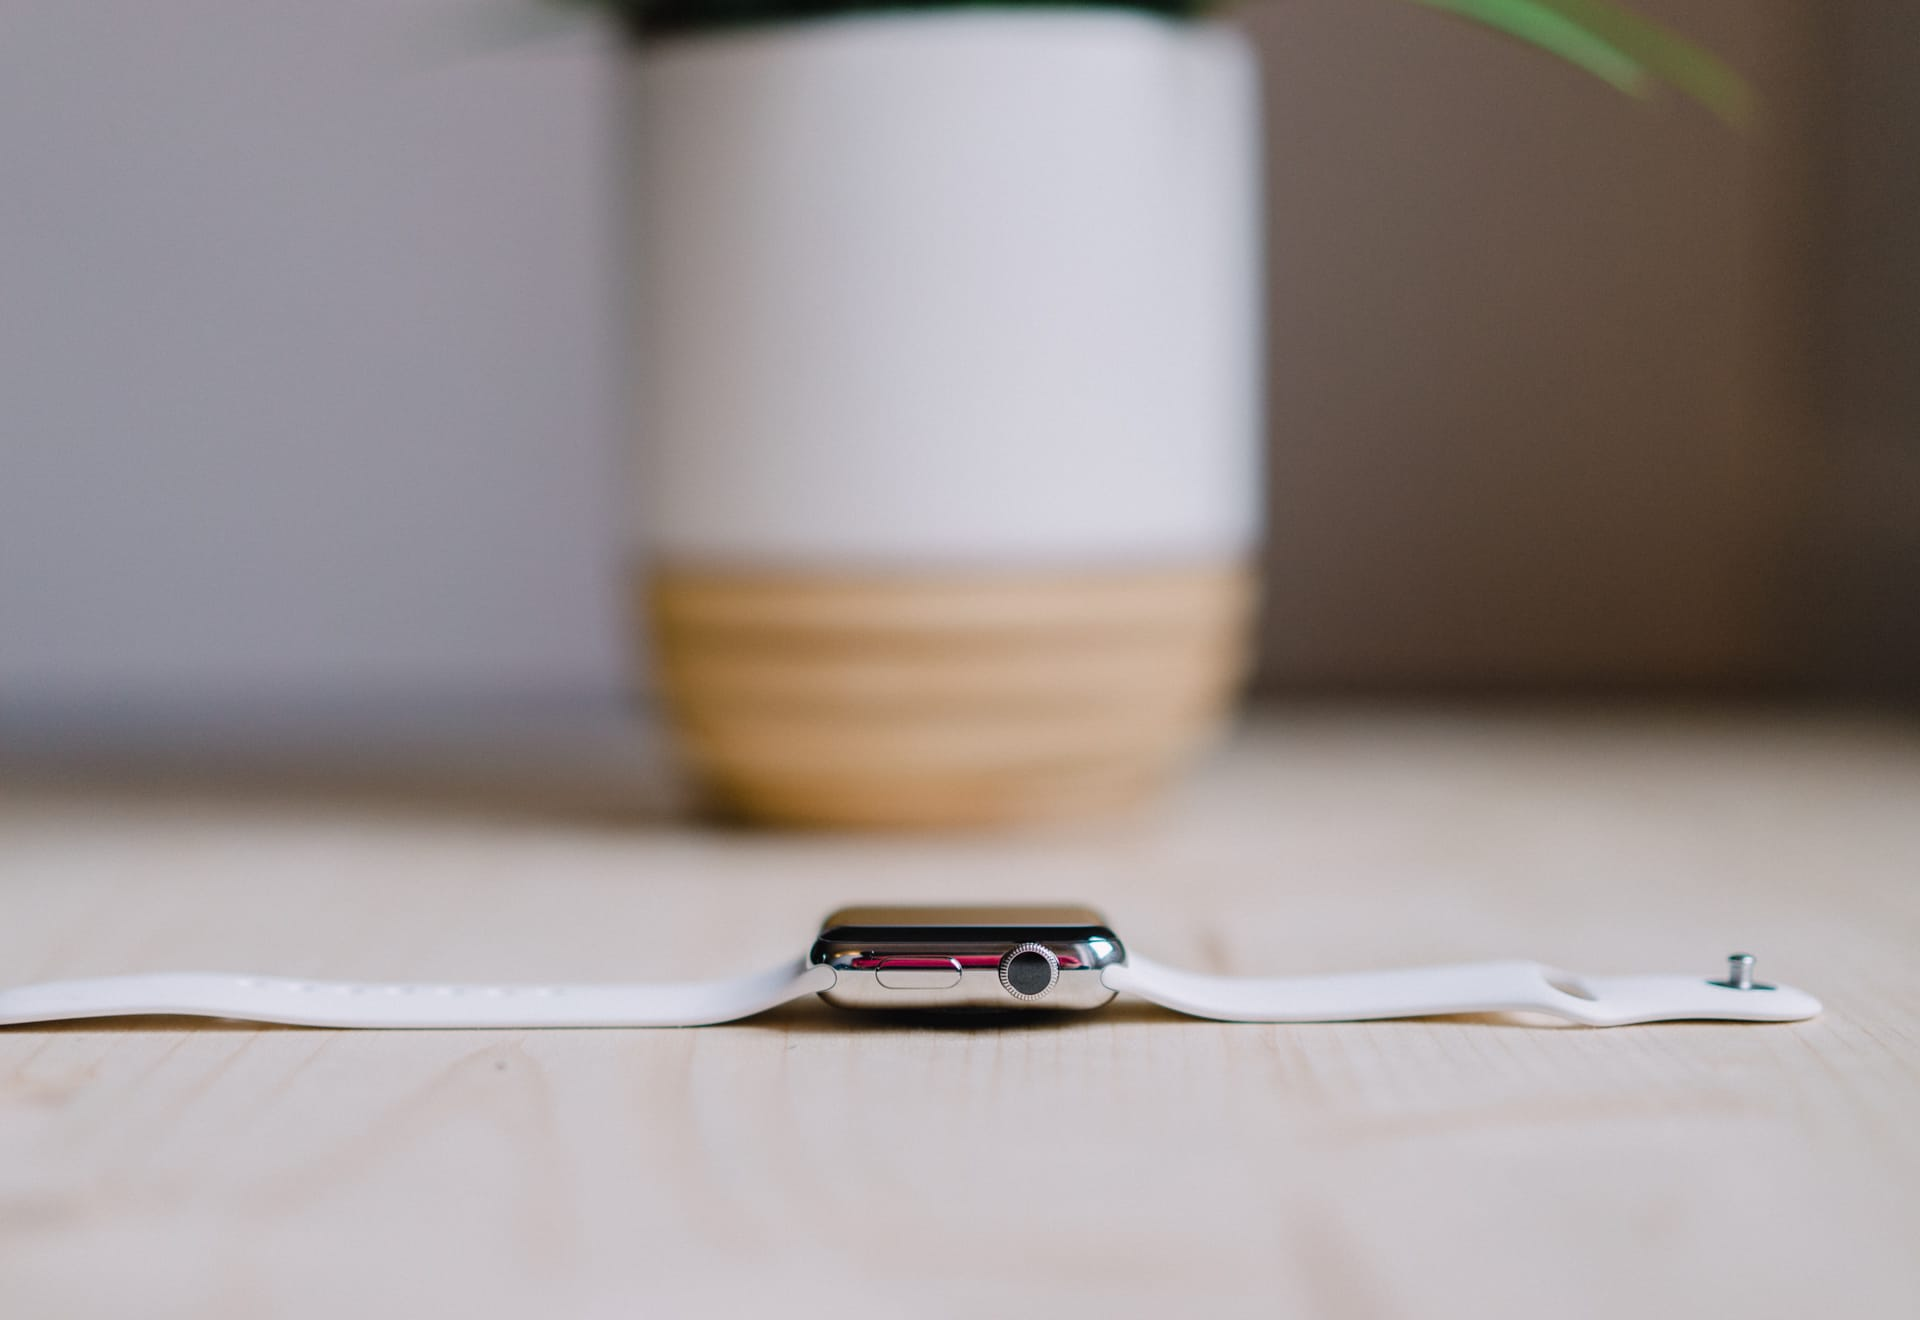 The Apple Watch Series 2 Review — Tools and Toys